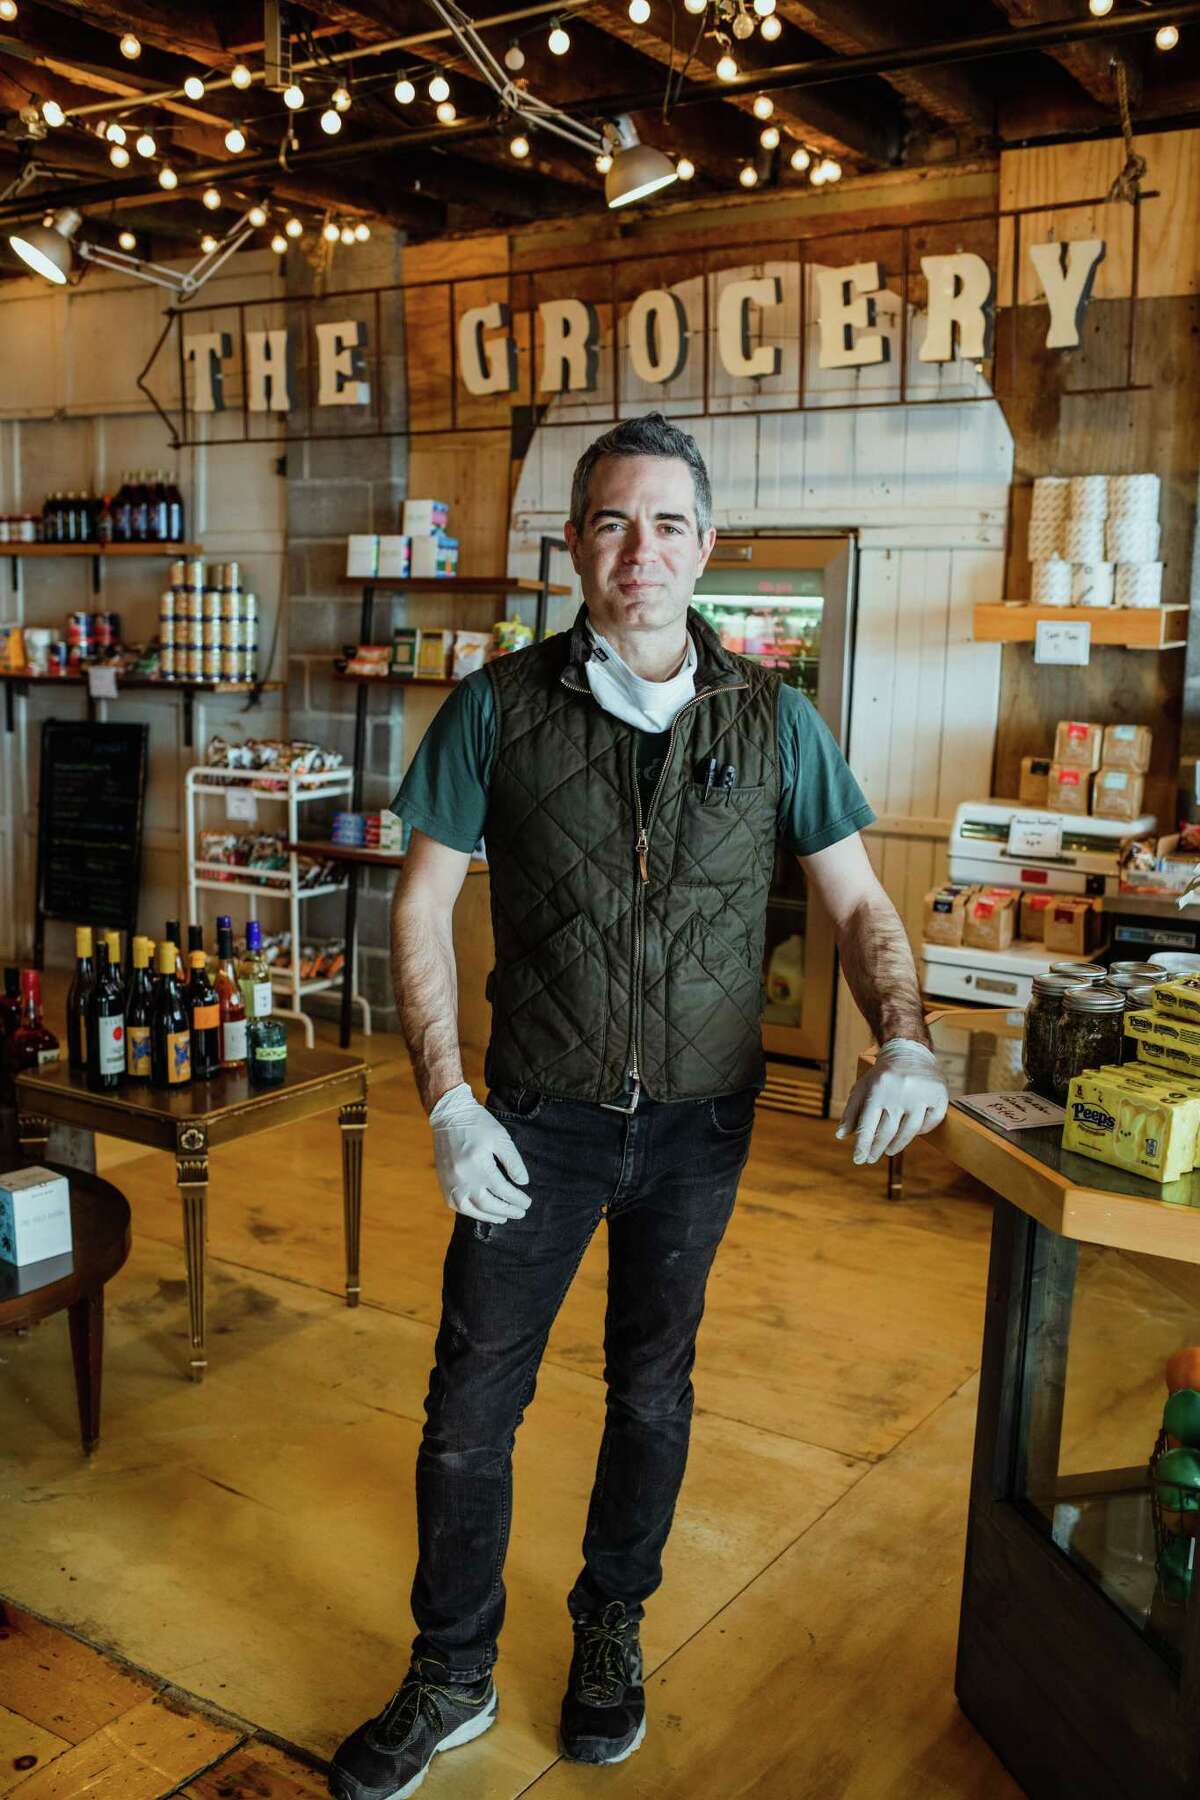 Vic Christopher, owner of Clark House Hospitality in Troy, shown in April of this year in an area of the company's Little Peck's cafe that has been turned into a small market. Little Pecks is within the larger Clark House building, at 207-217 Broadway. (Photo by Konrad Odhiambo.)